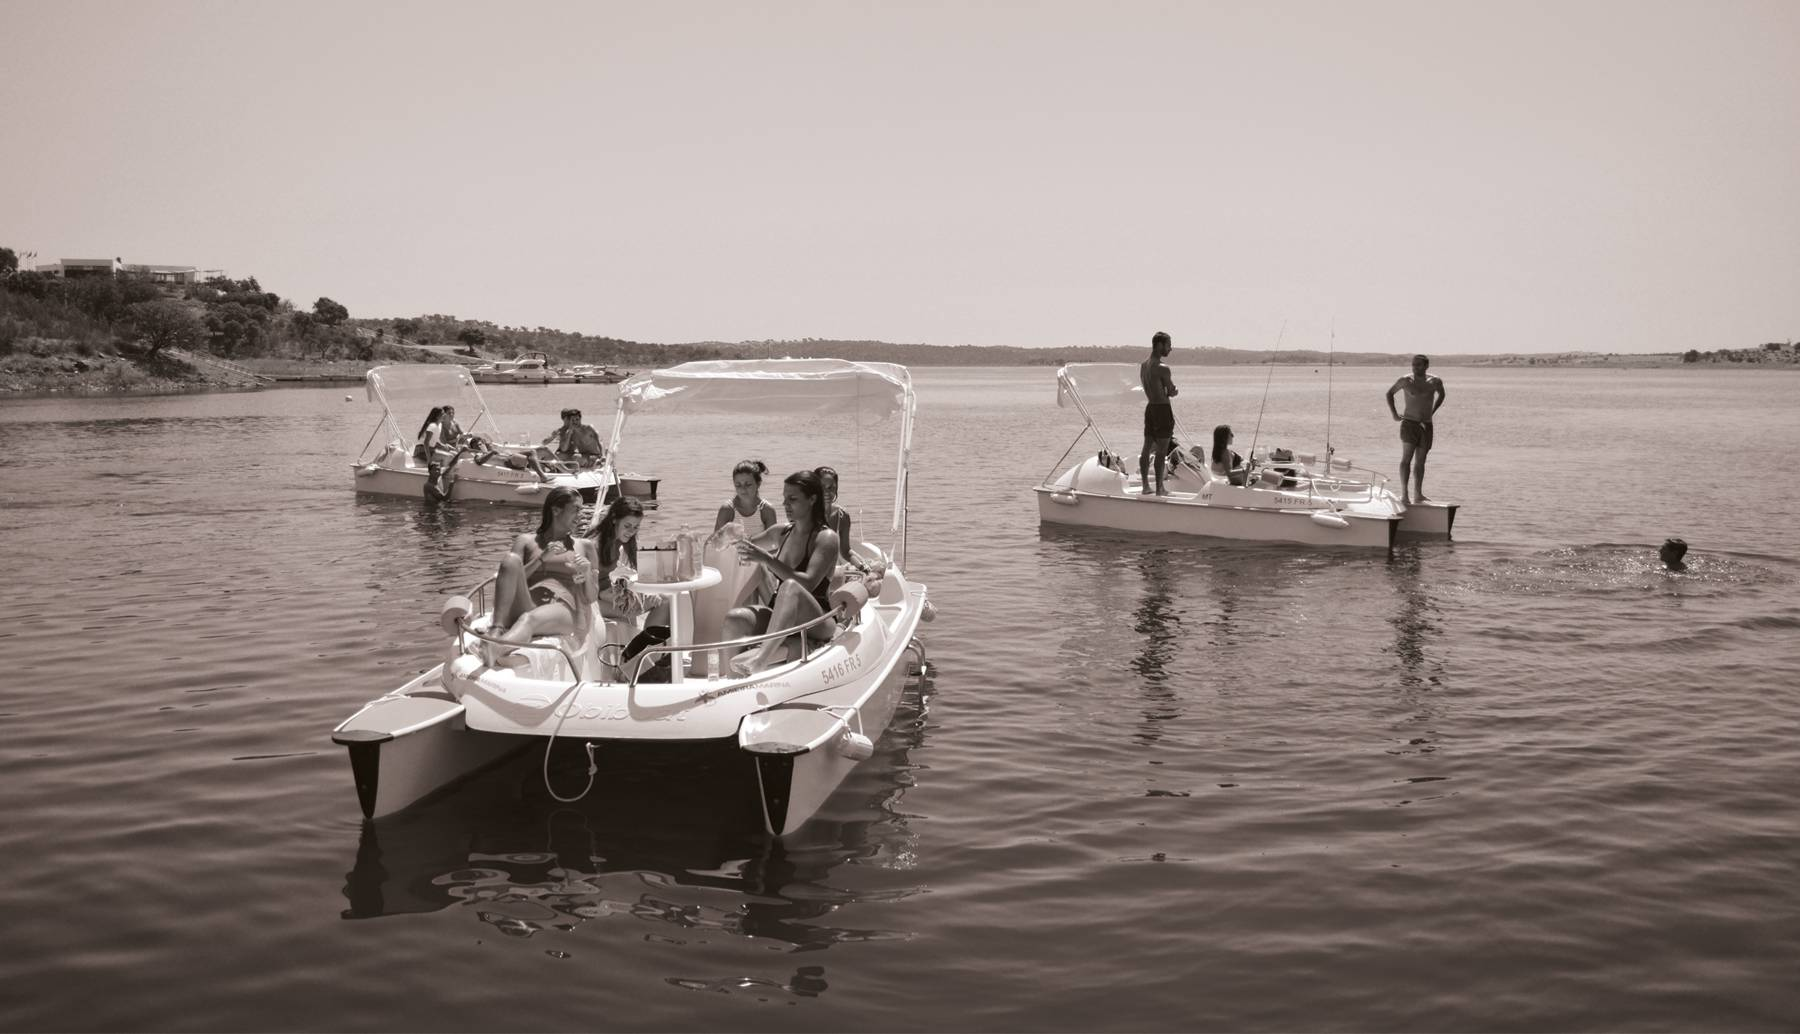 Amieira Marina has electric boats available for rental.